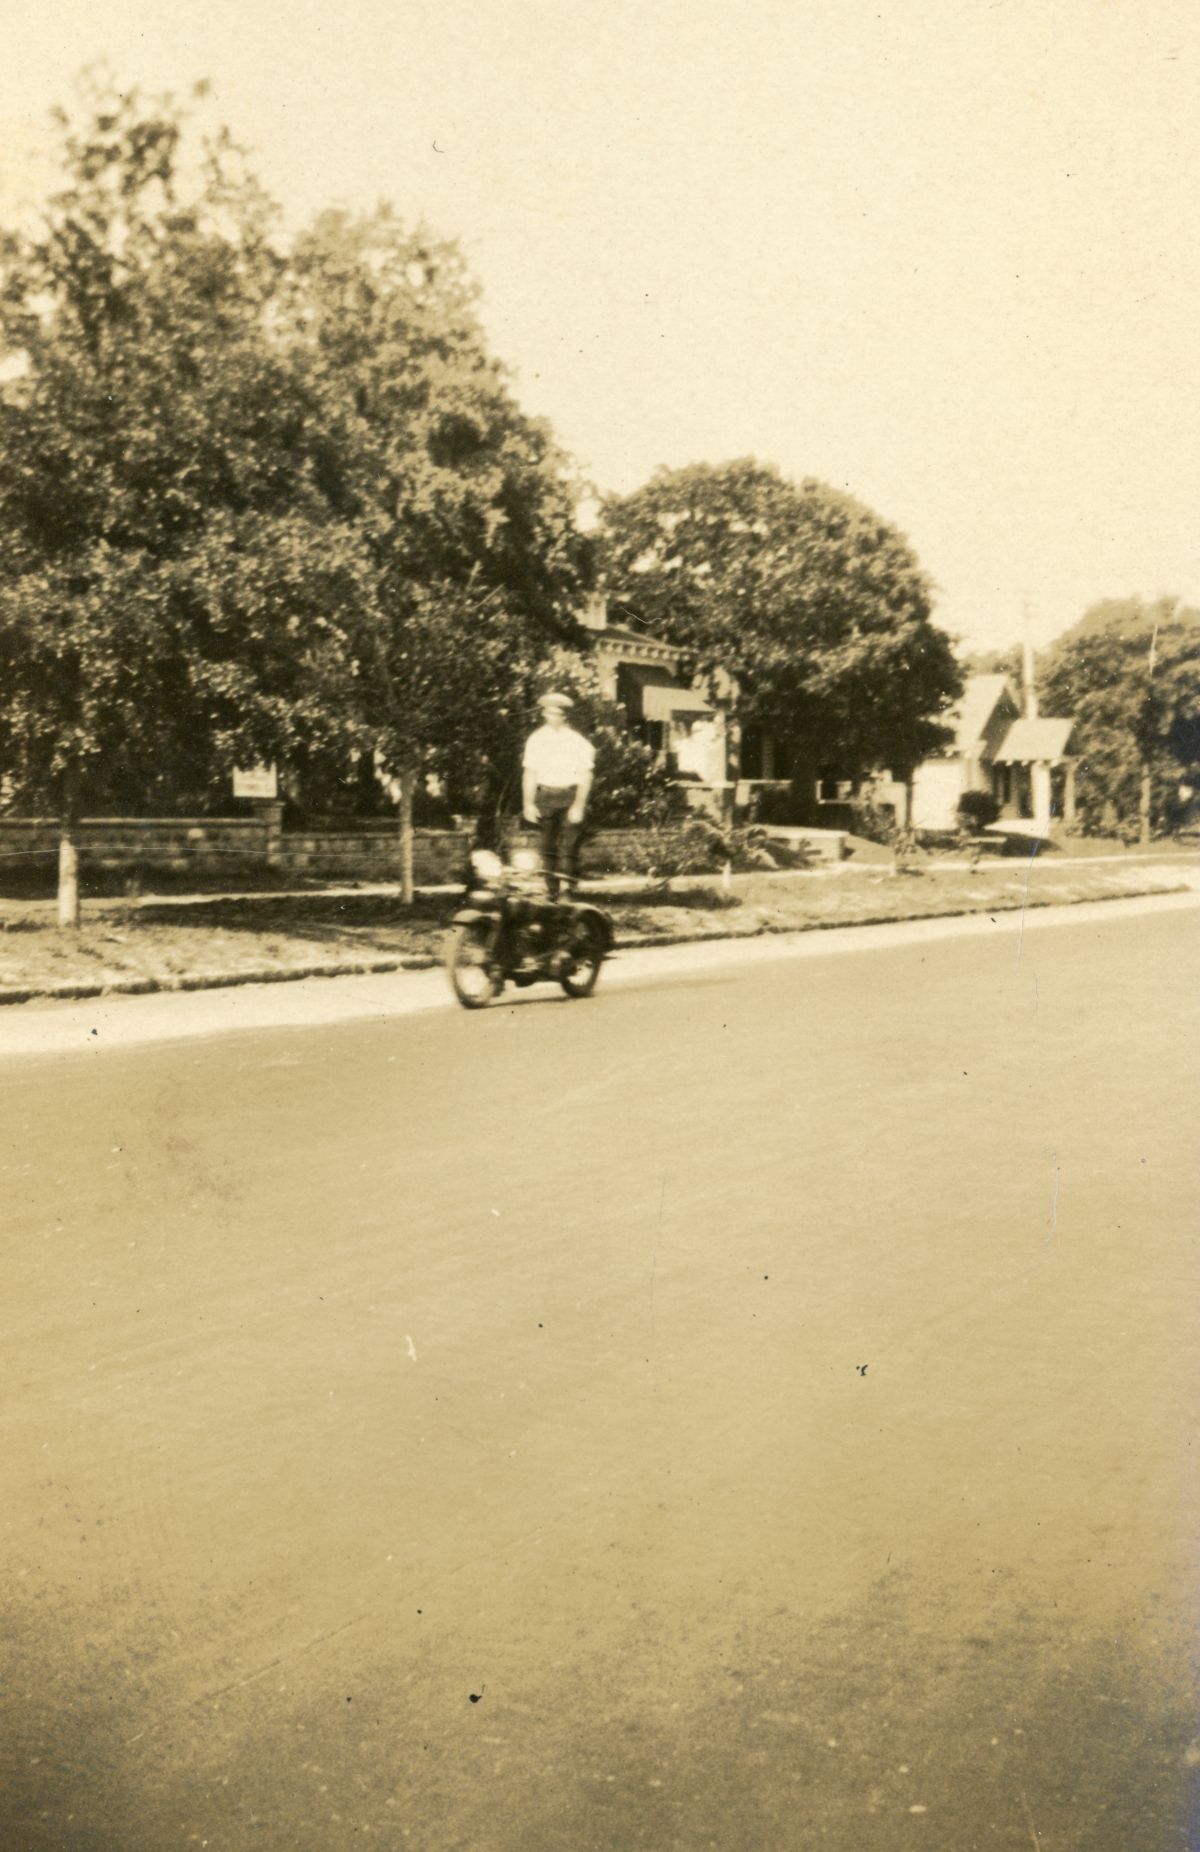 Luther W. Coleman trick riding his motorcycle on 4th St. in St. Petersburg.